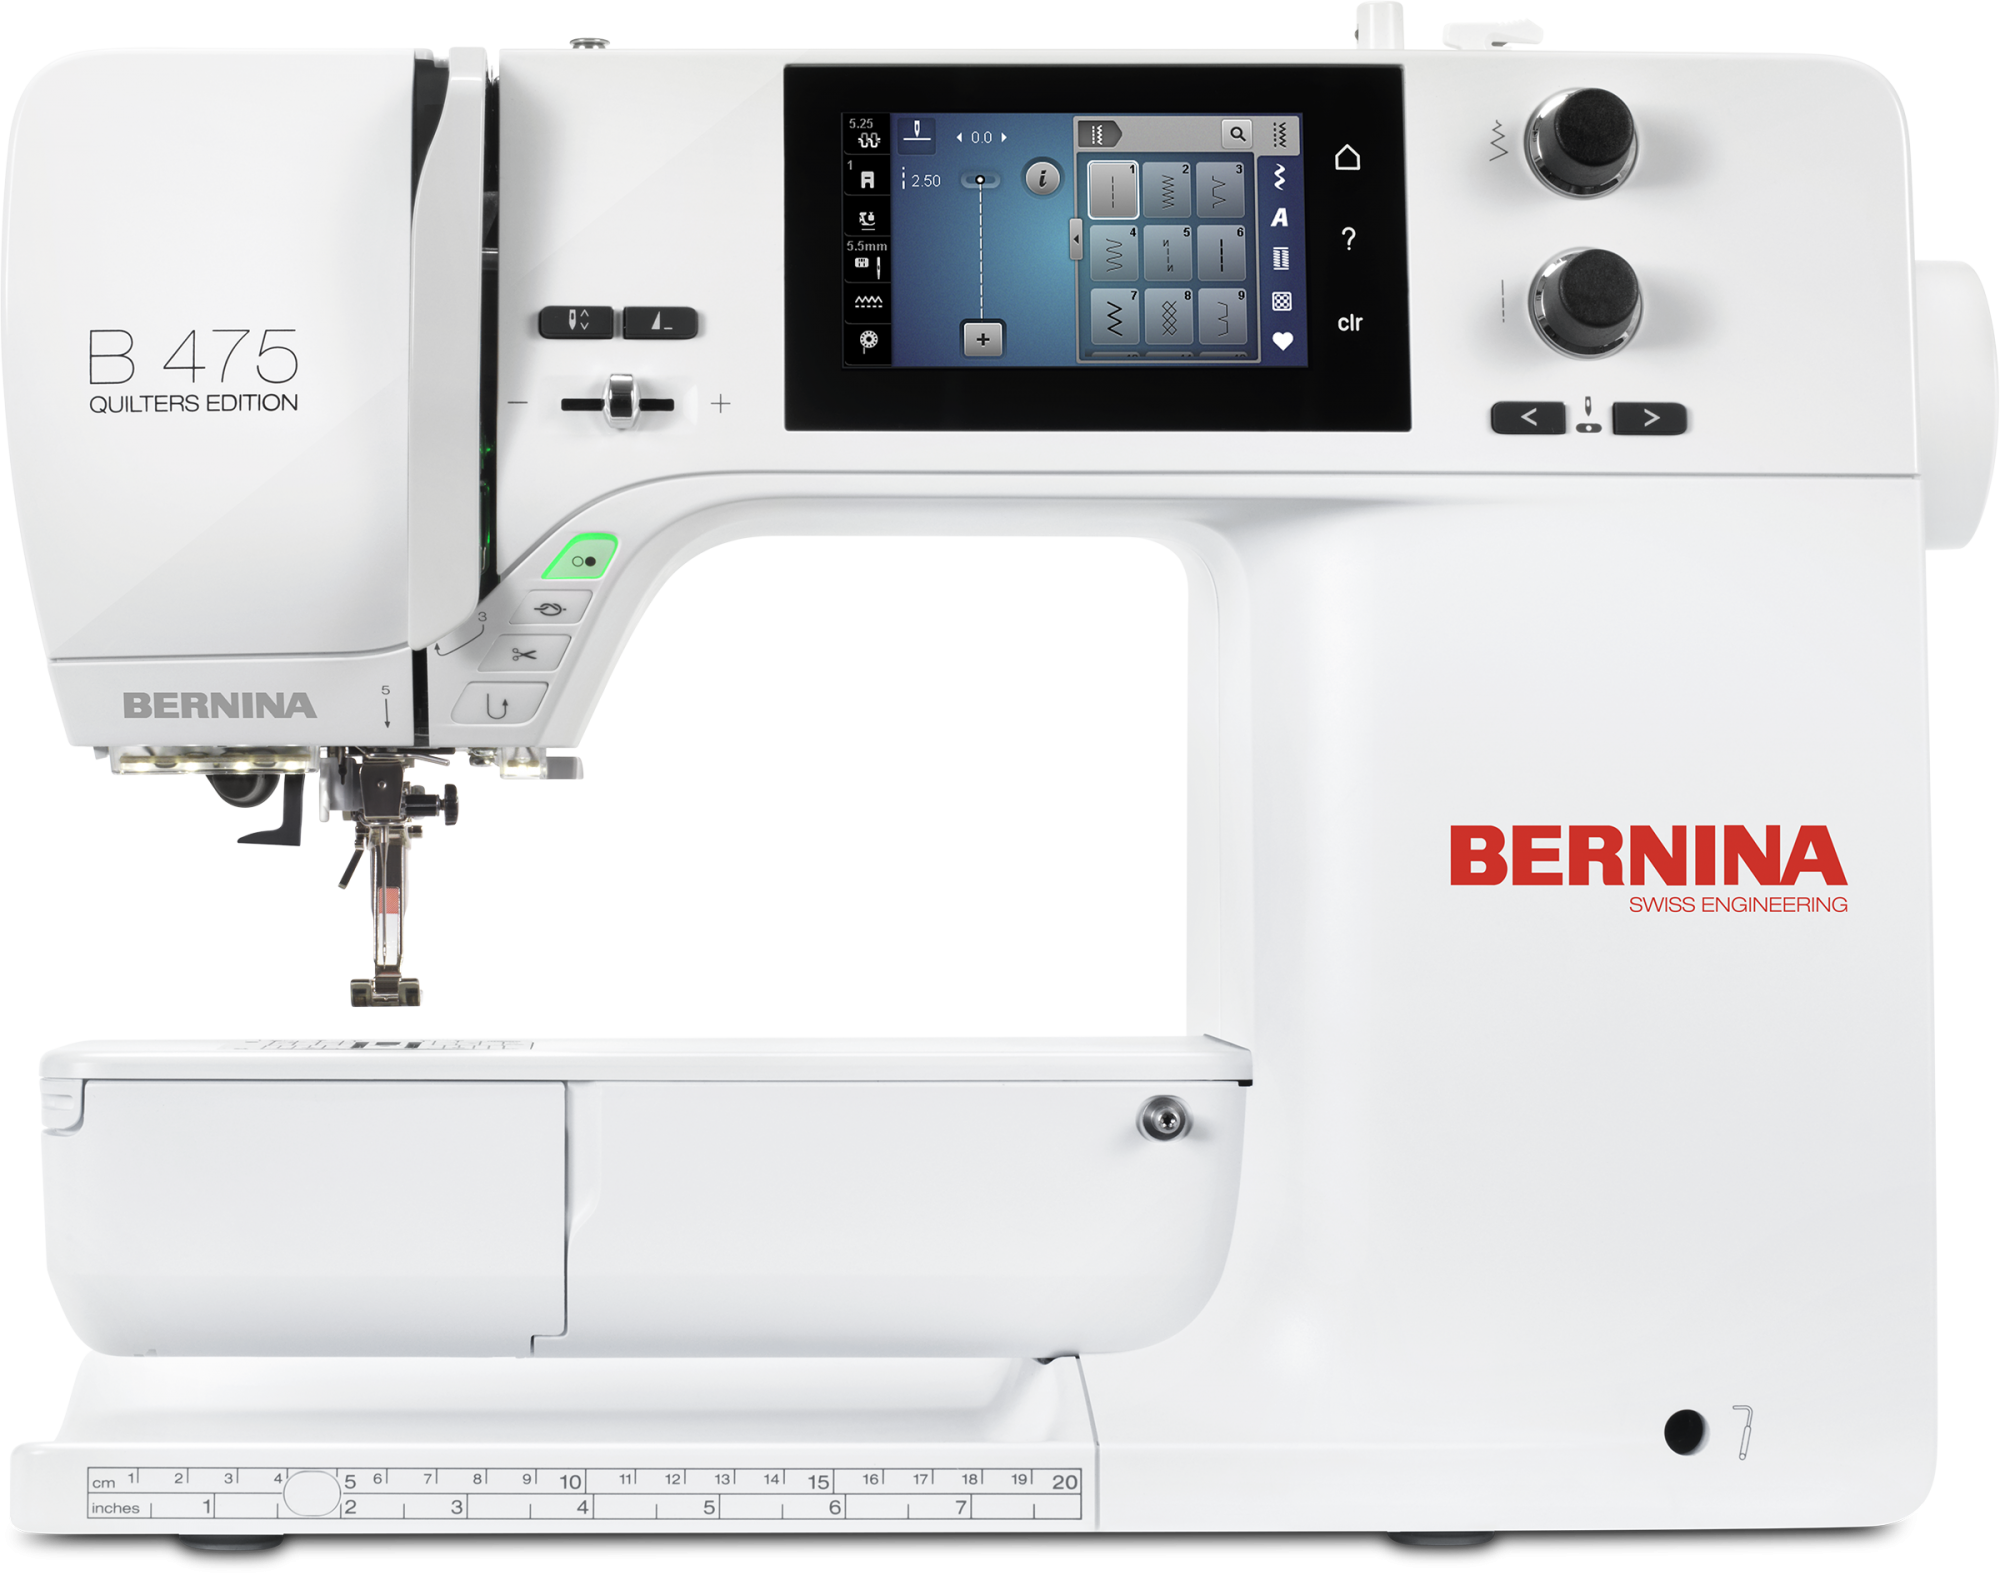 BERNINA 475 QUILTERS EDITION